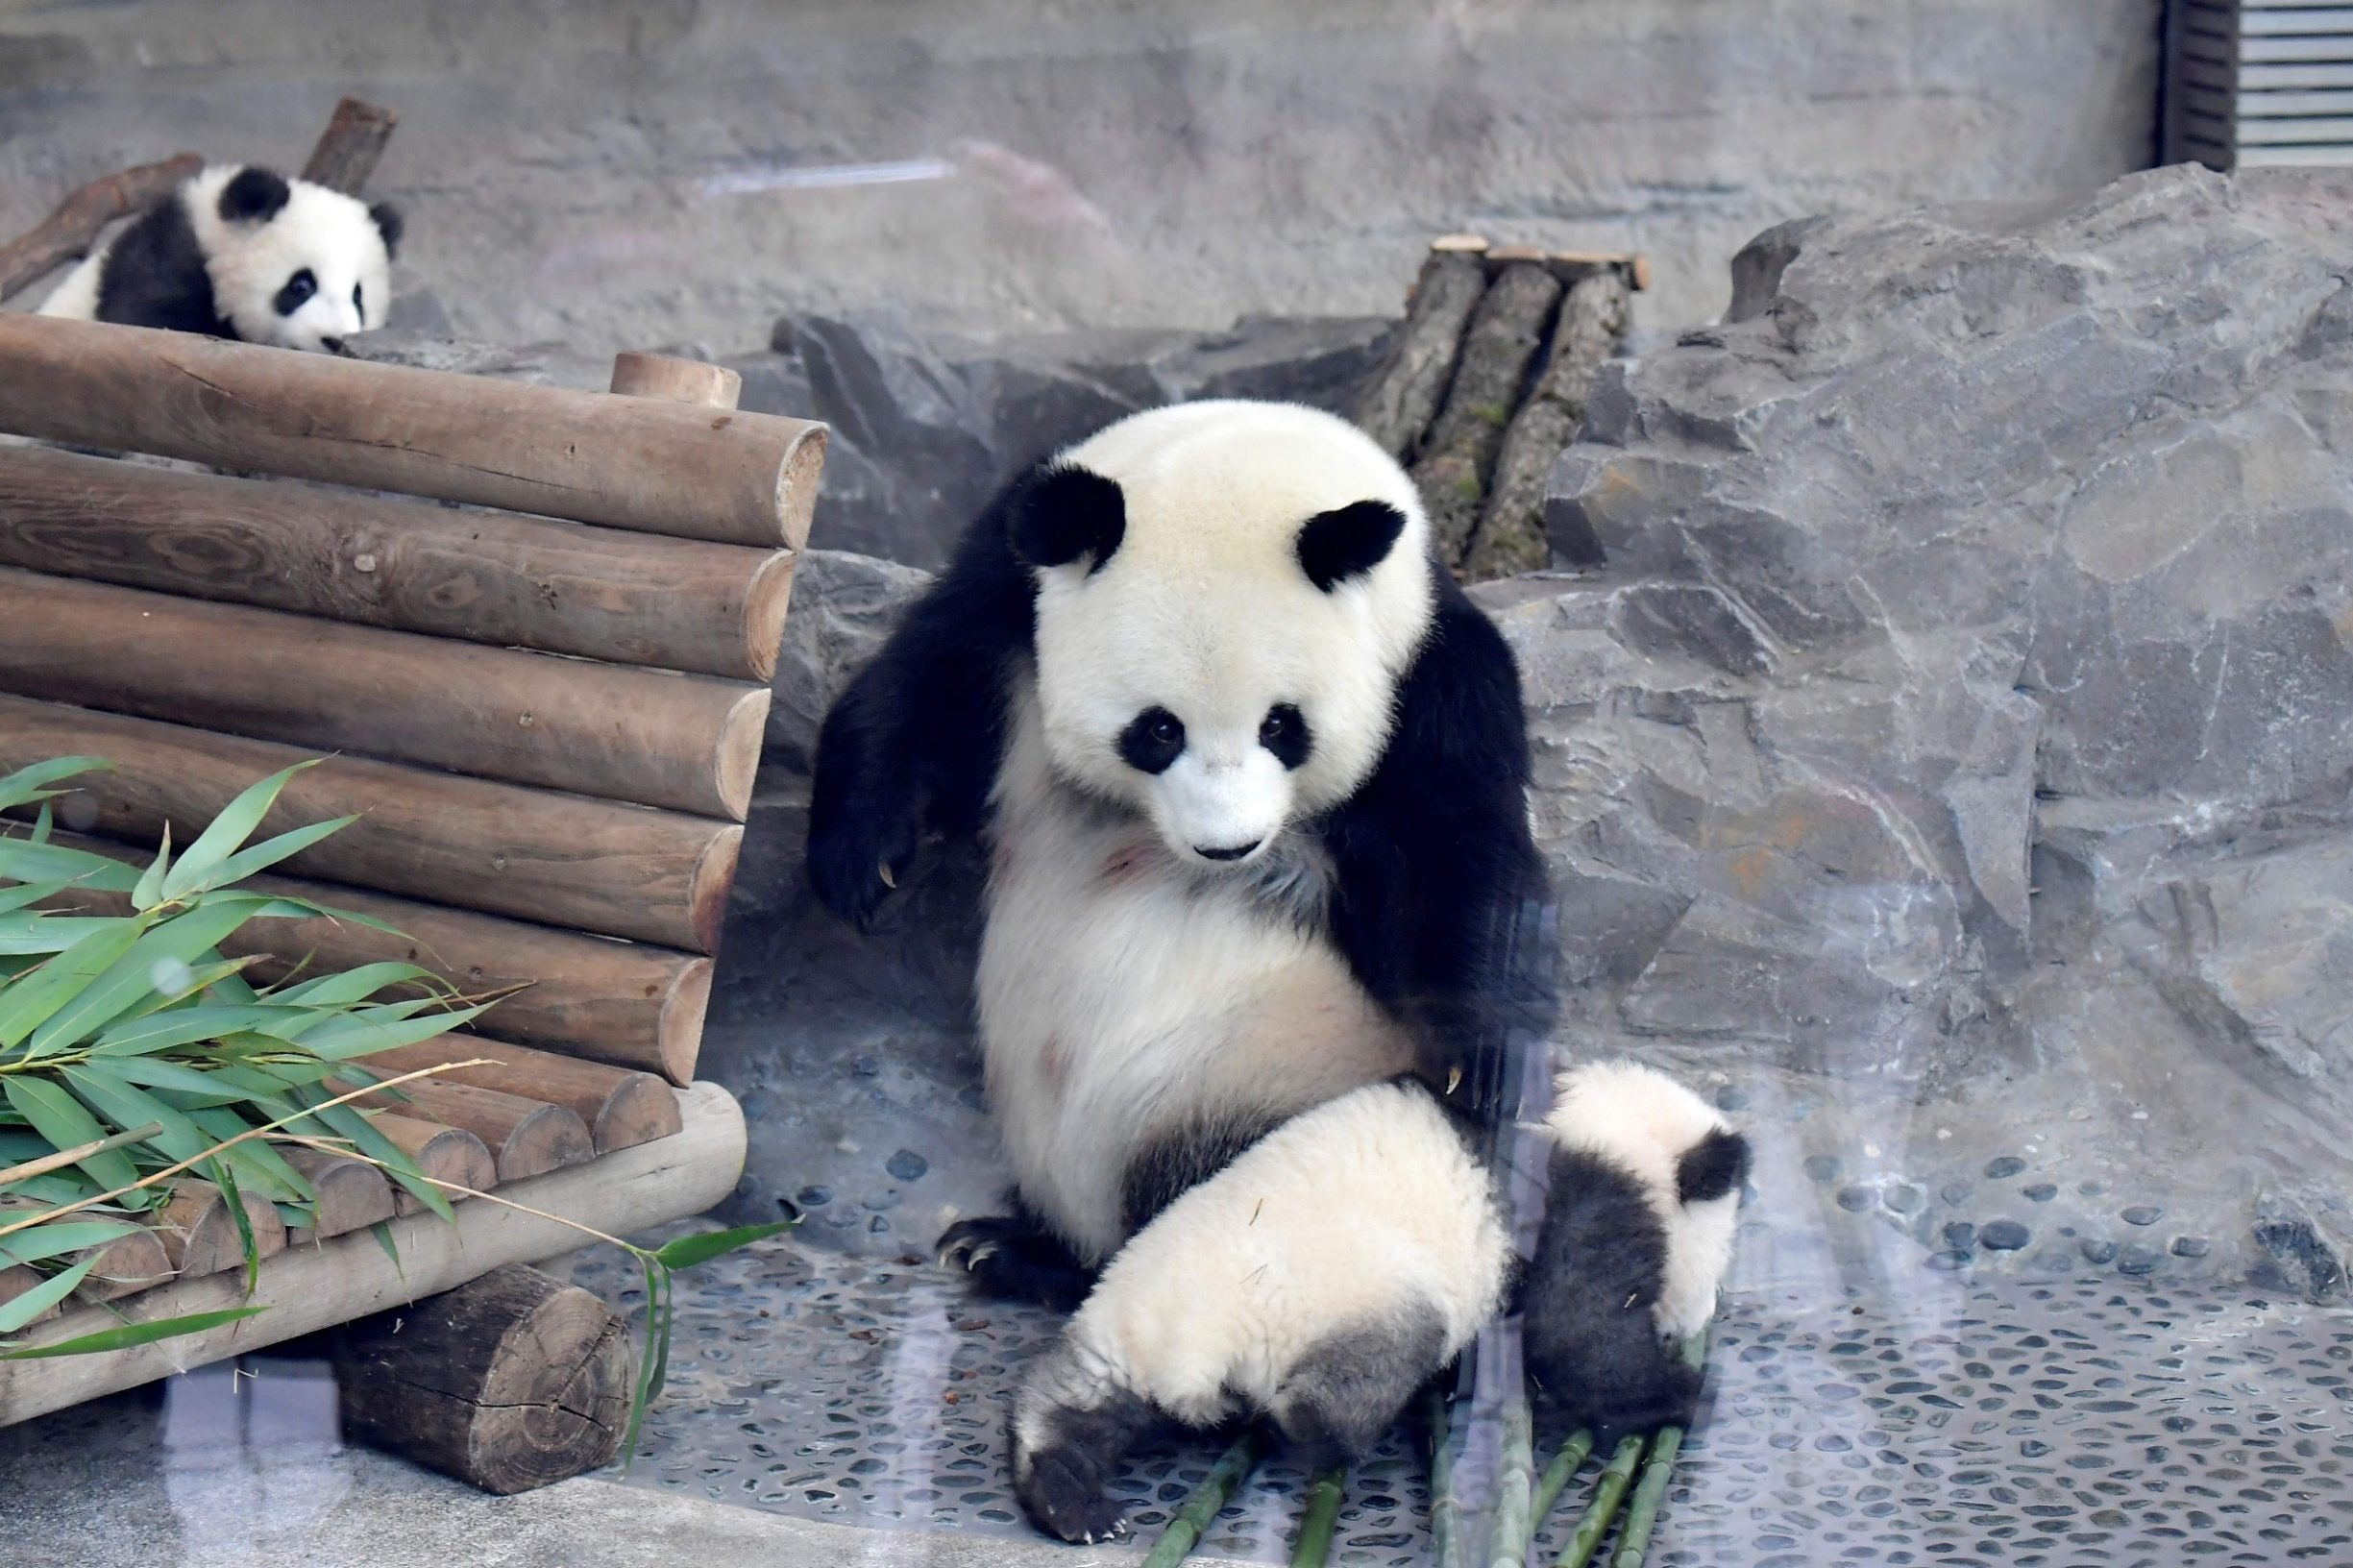 A picture taken on January 29, 2020 shows Meng Yuan and Meng Xiang, two Berlin-born Chinese panda cubs, with their mother Meng Meng at their enclosure during their first presentation to the public at the Zoologischer Garten zoo in Berlin. - Meng Meng gave birth to twins on August 31, 2019. On loan from China, Meng Meng and male panda Jiao Qing arrived in Berlin in June 2017. While the cubs, Meng Yuan and Meng Xiang, are born in Berlin, they remain Chinese and must be returned to China within four years after they have been weaned. (Photo by Tobias SCHWARZ / AFP)